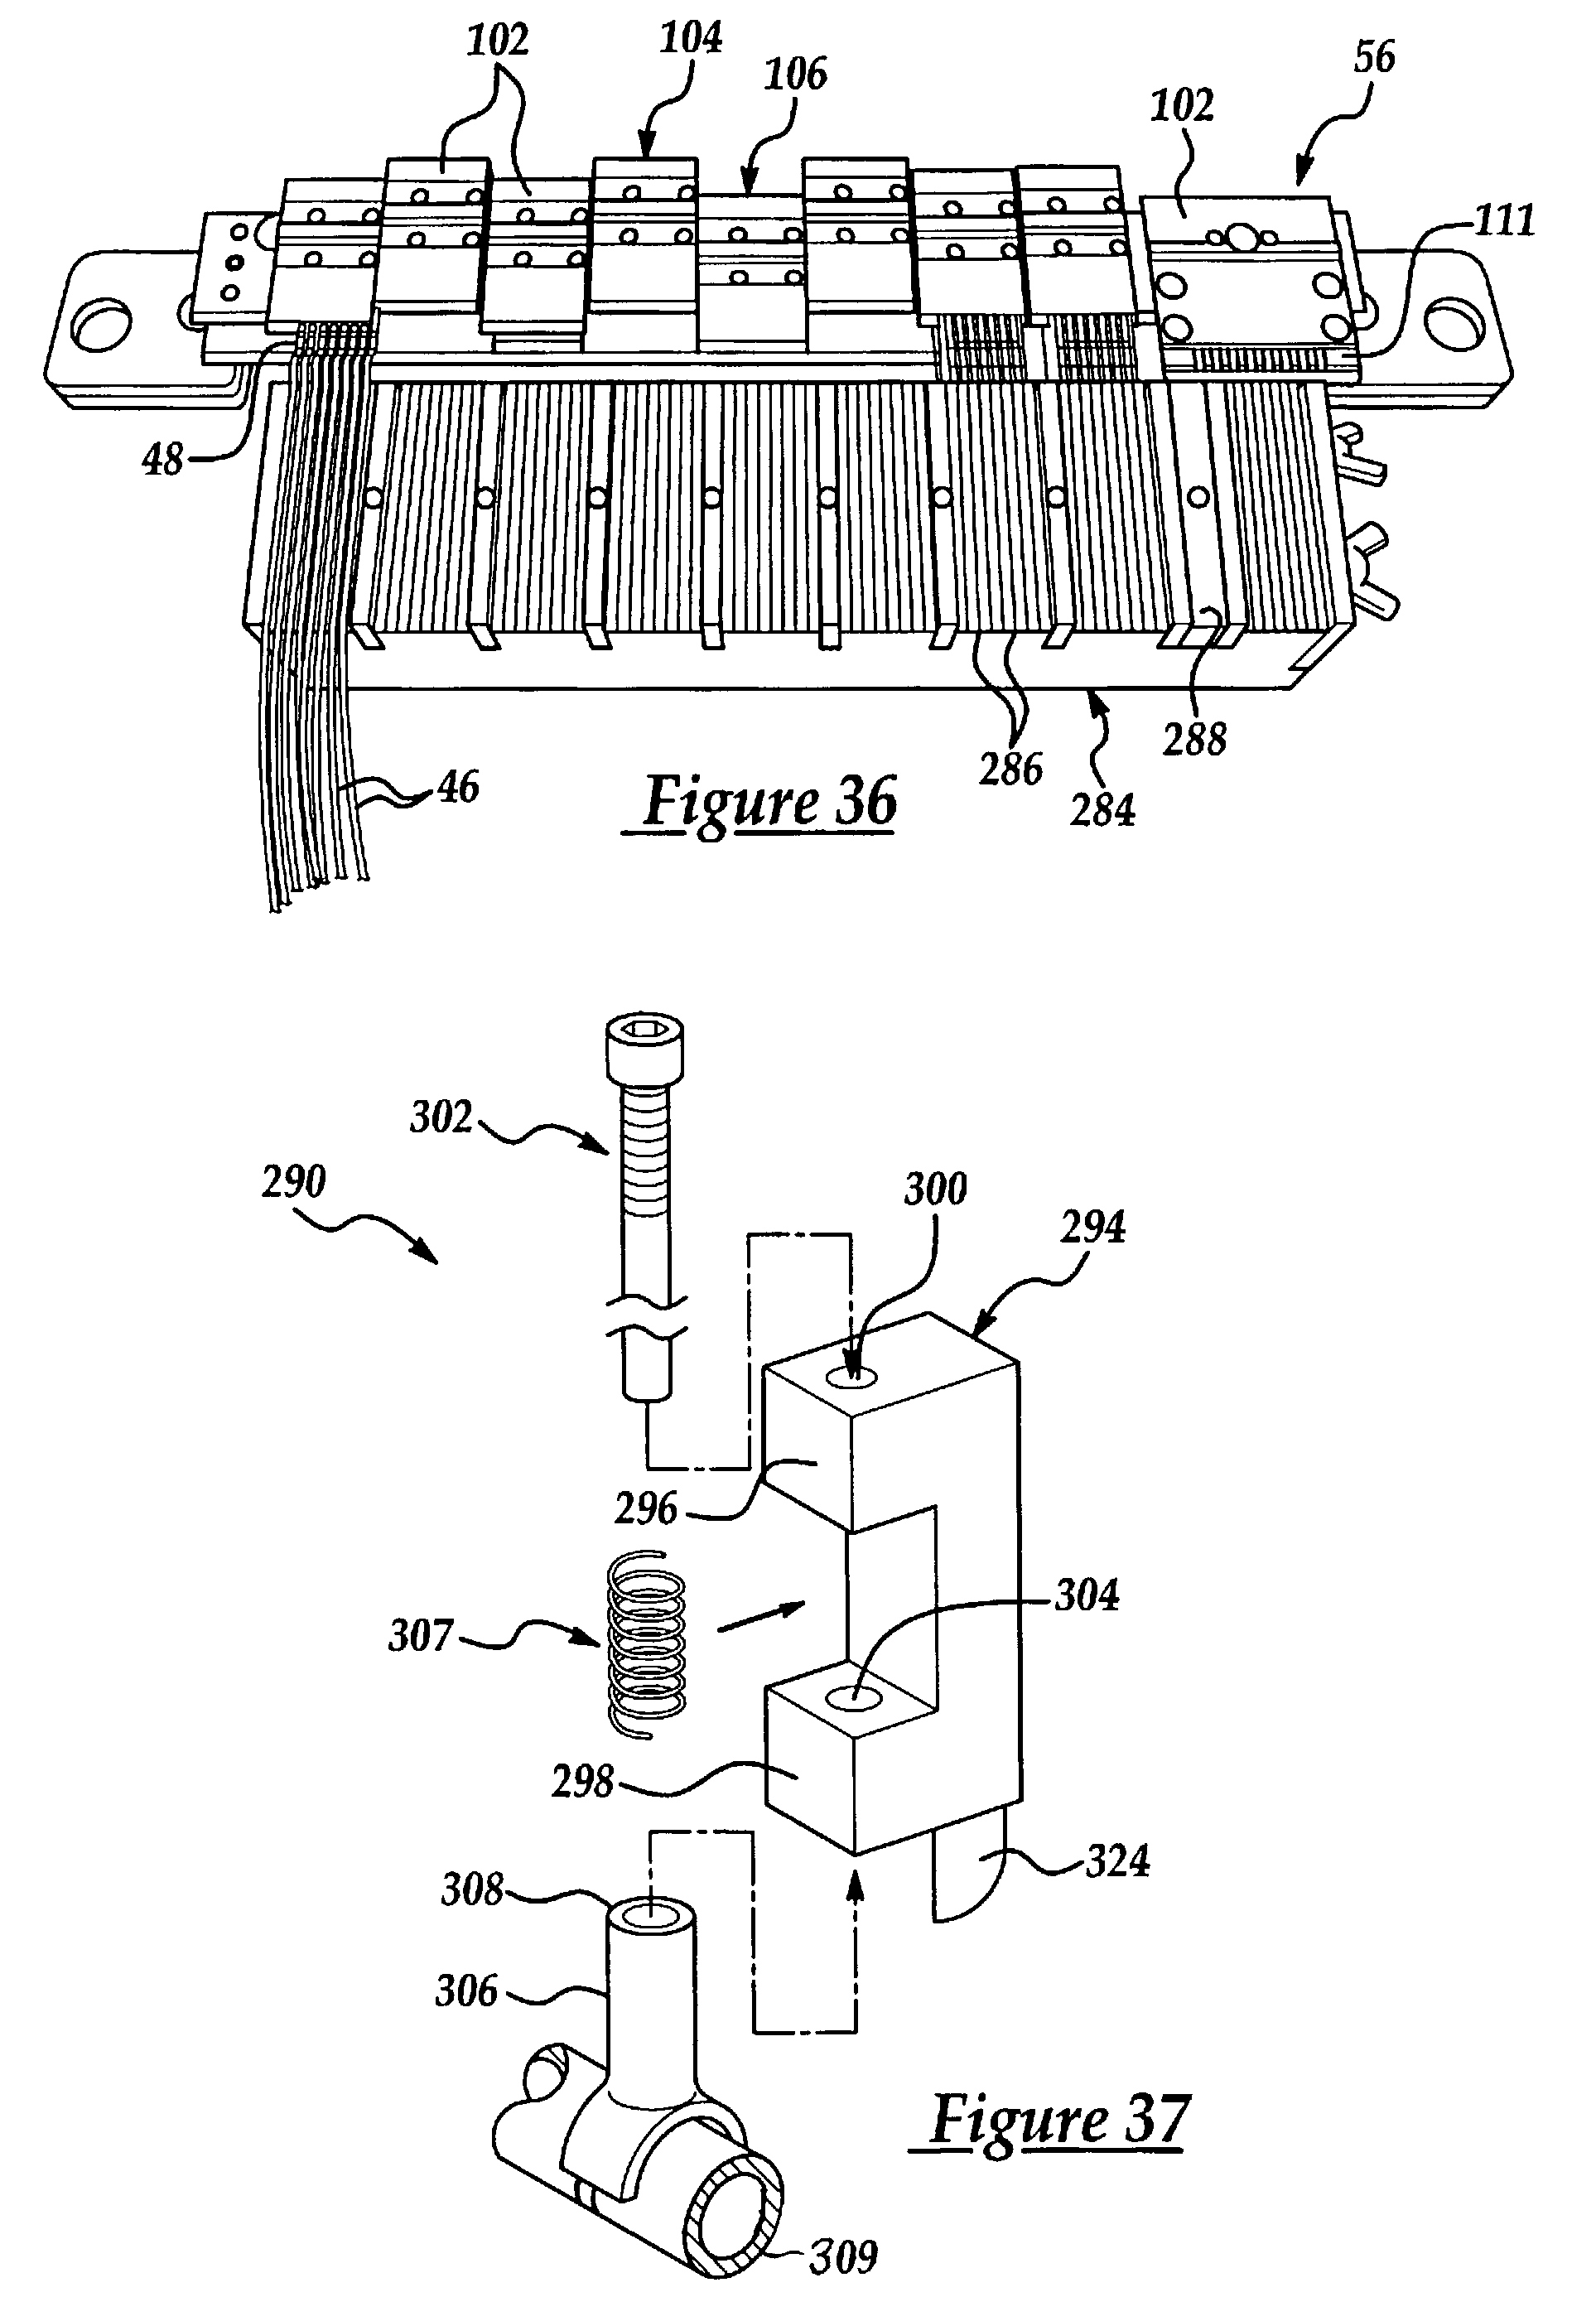 wire harness manufacturing process